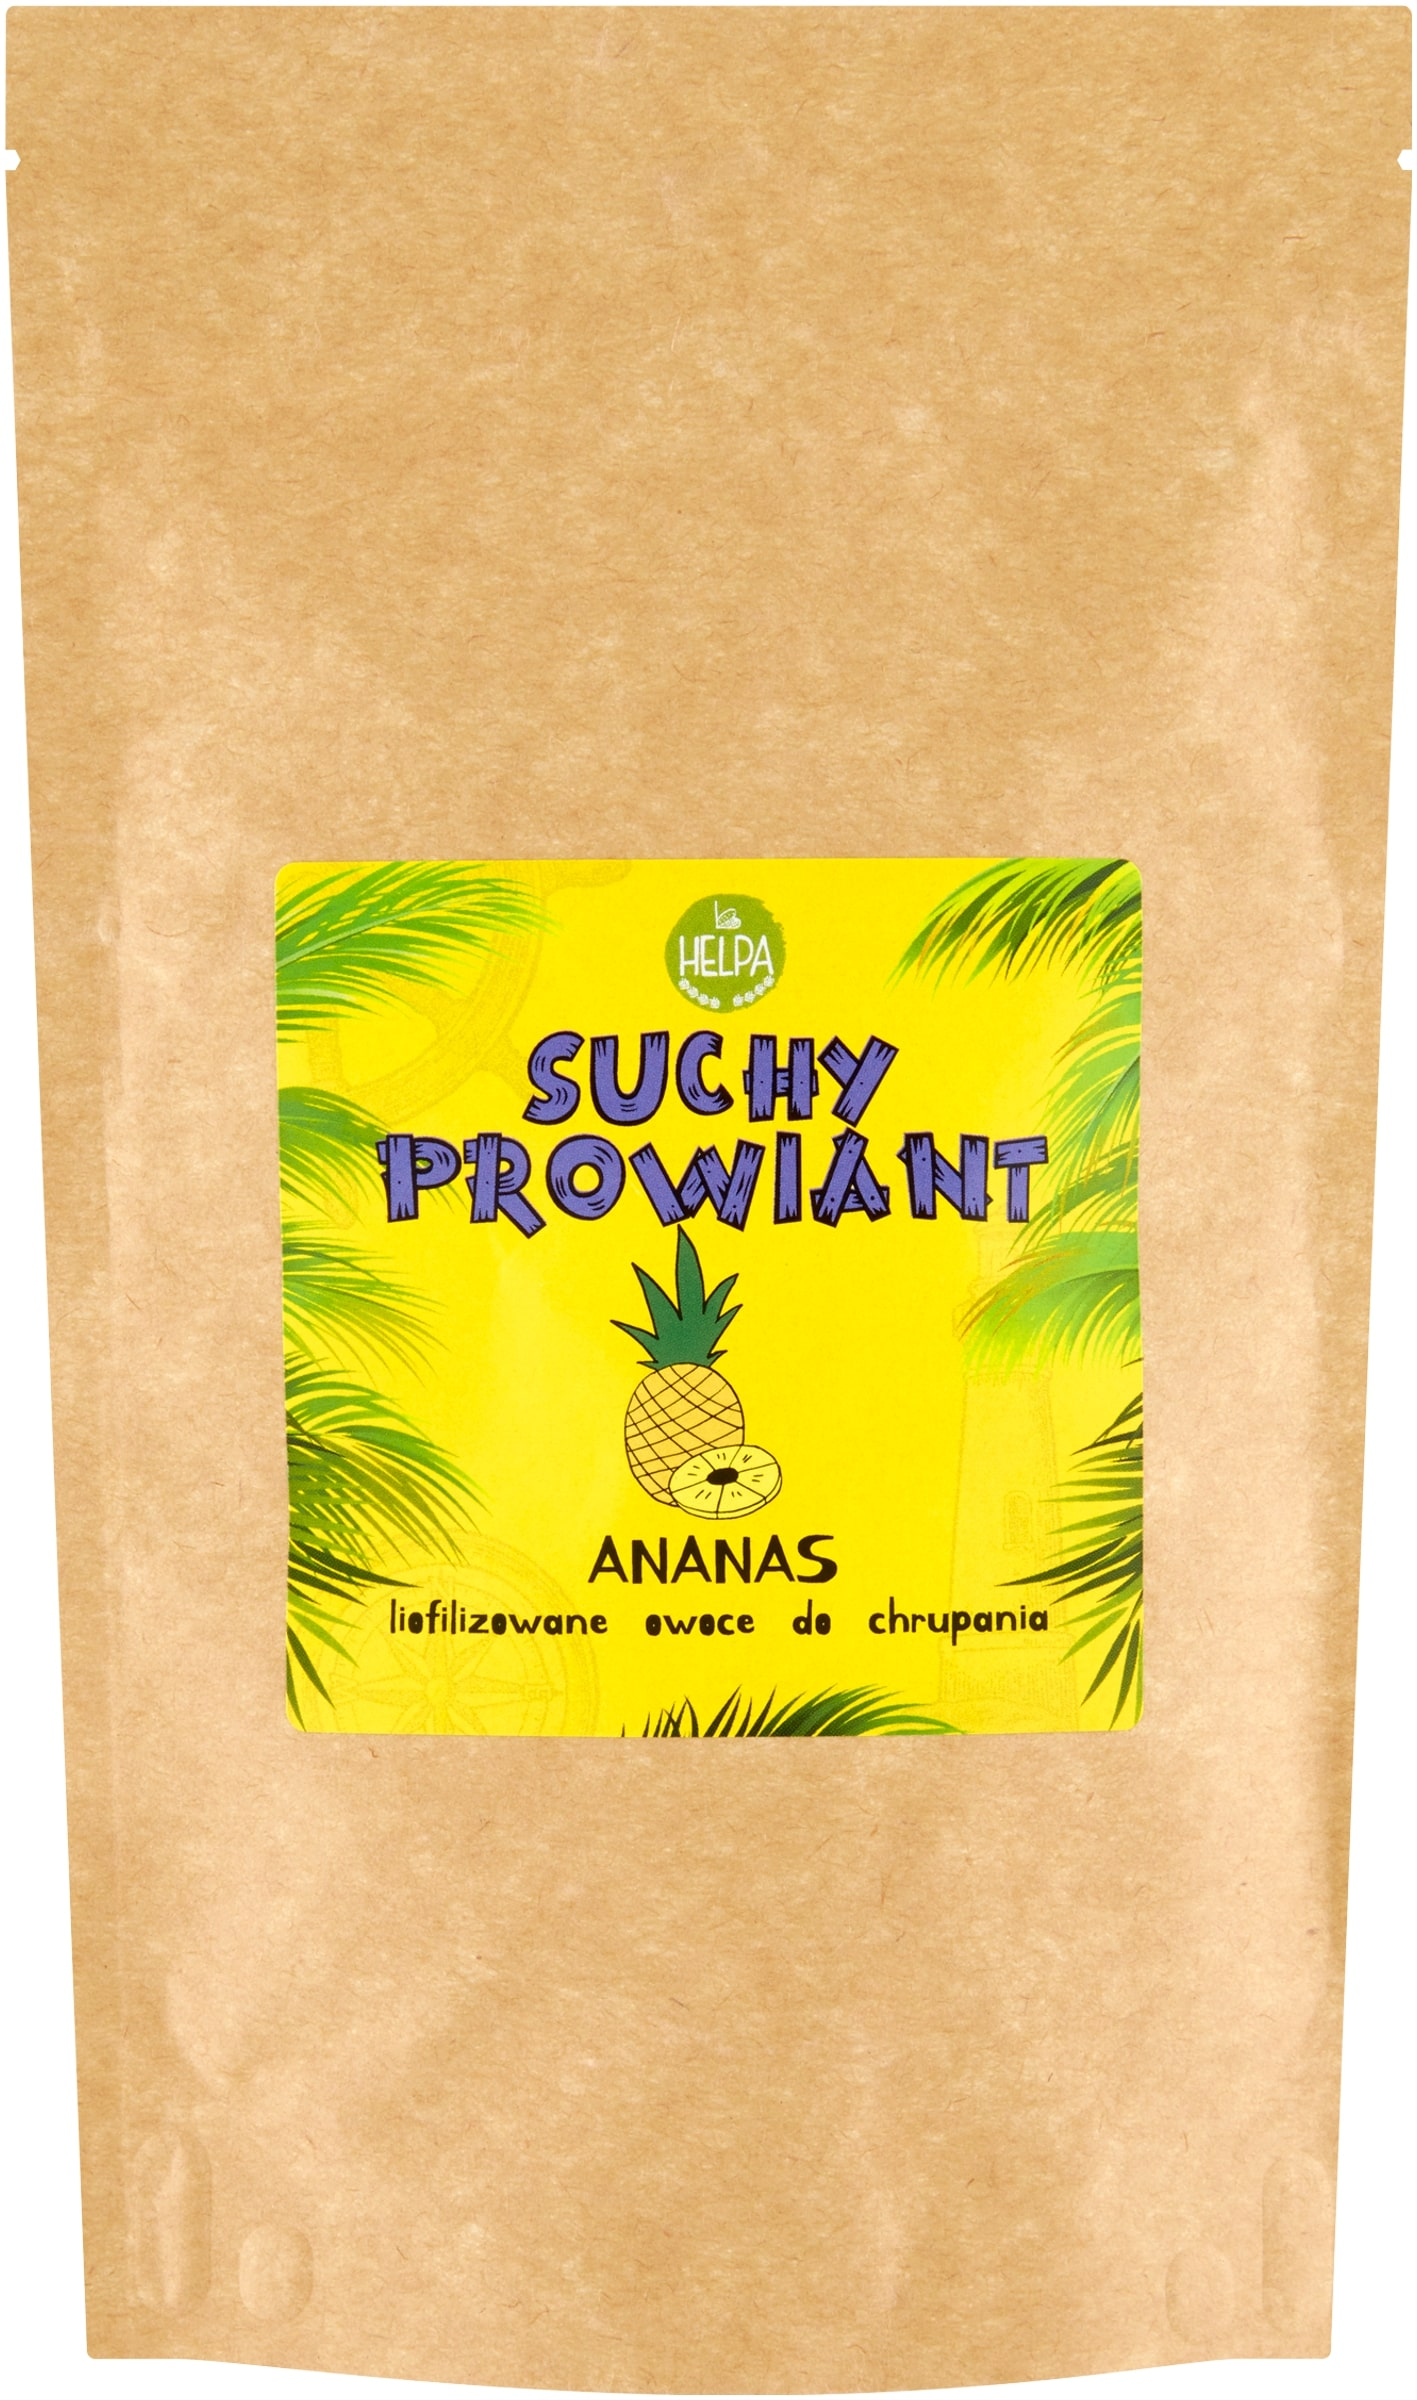 Suchy prowiant Ananas